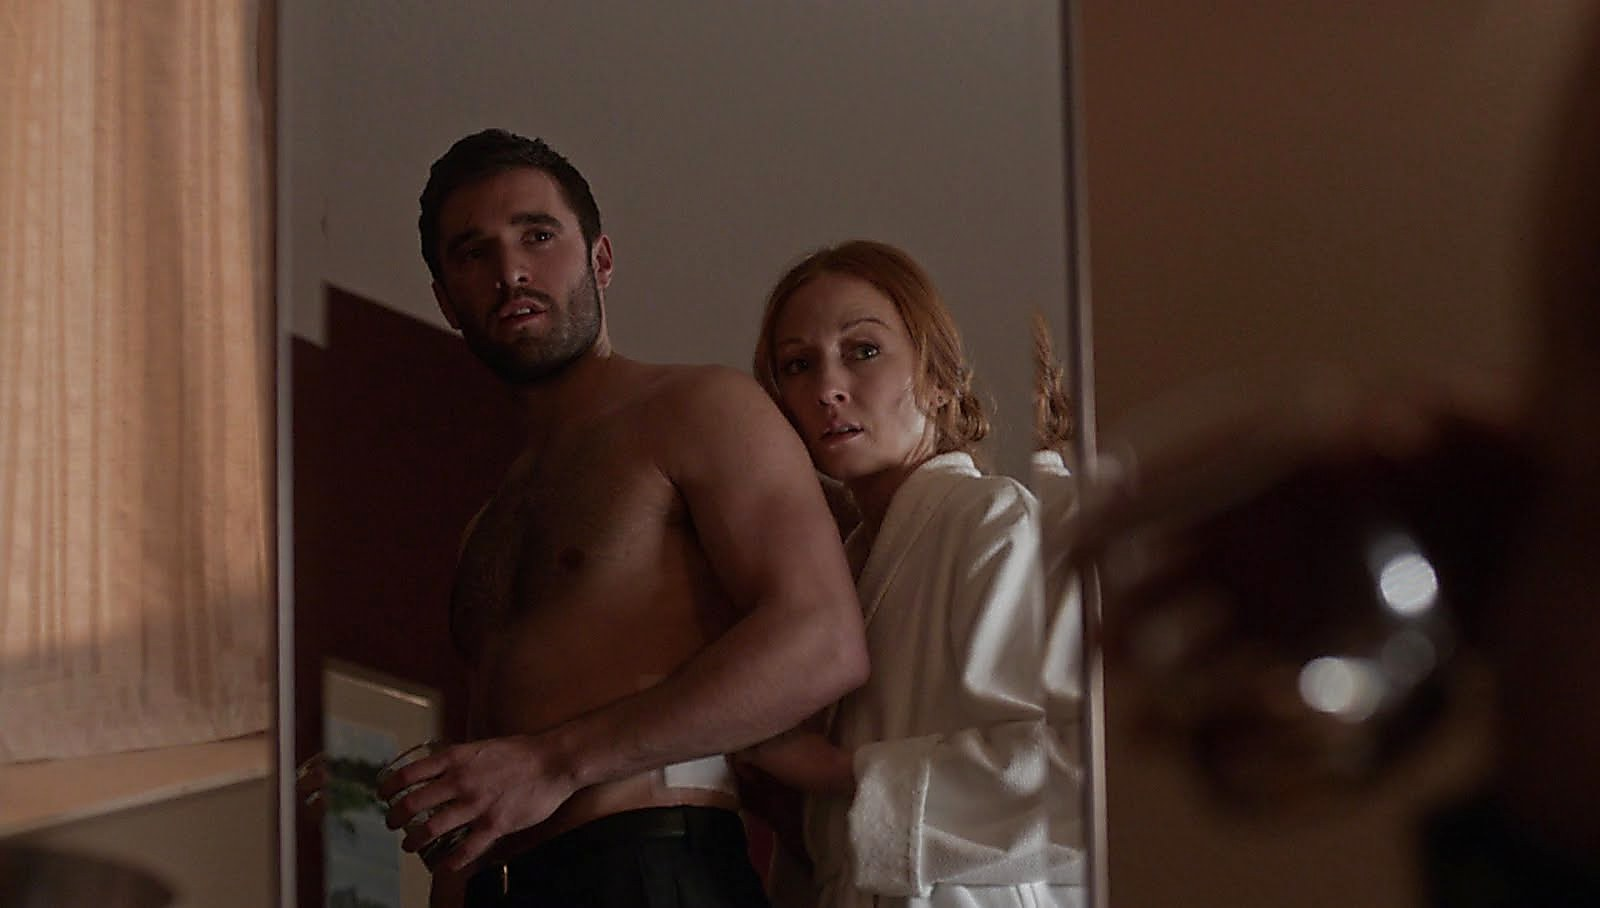 Joshua Bowman latest sexy shirtless scene September 4, 2017, 1pm